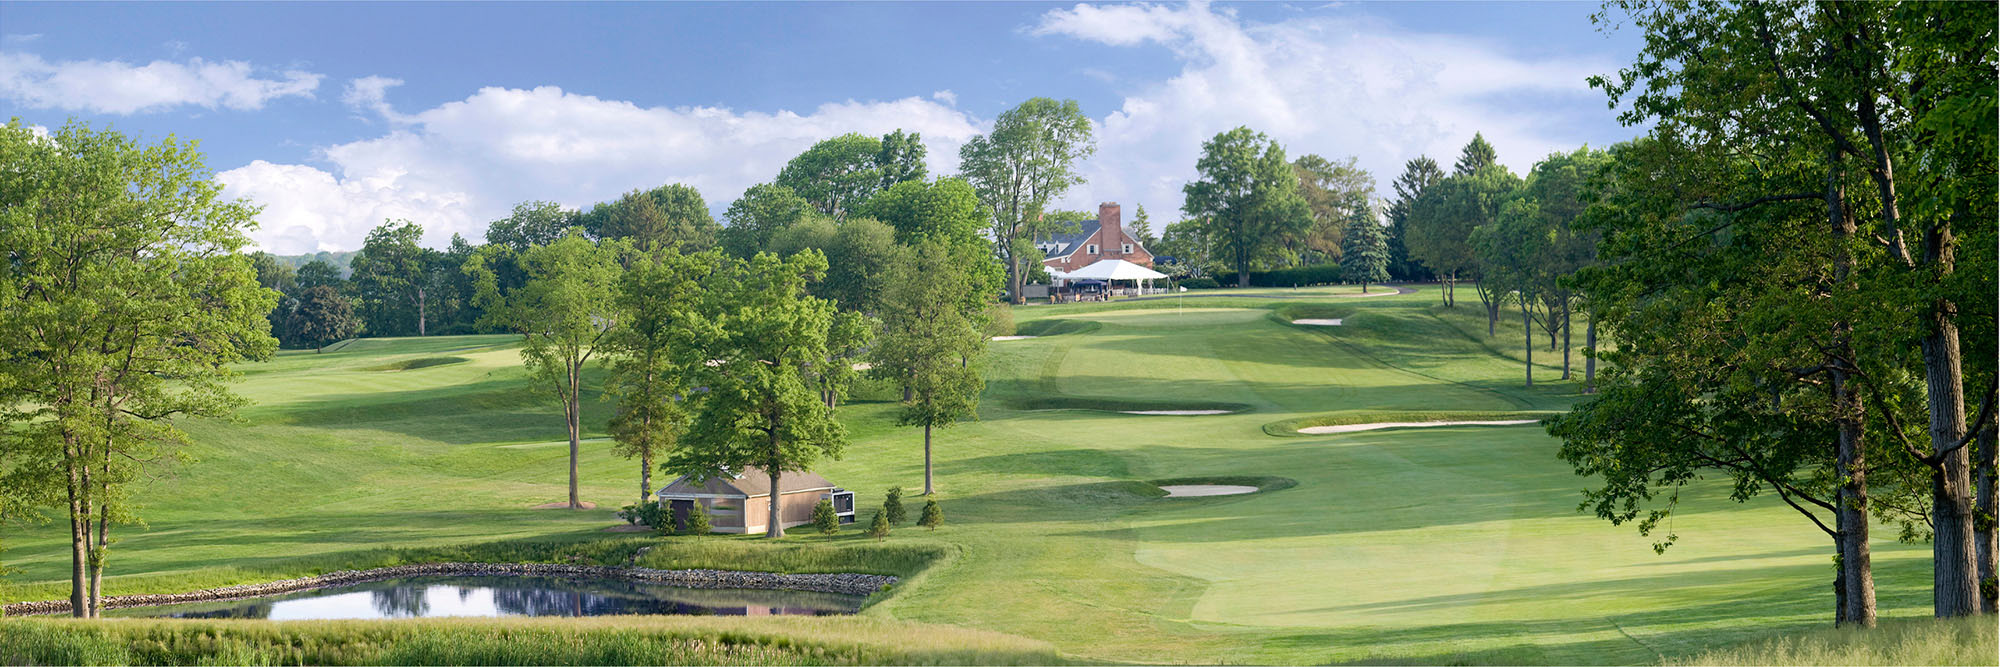 Golf Course Image - Essex County Country Club No. 18